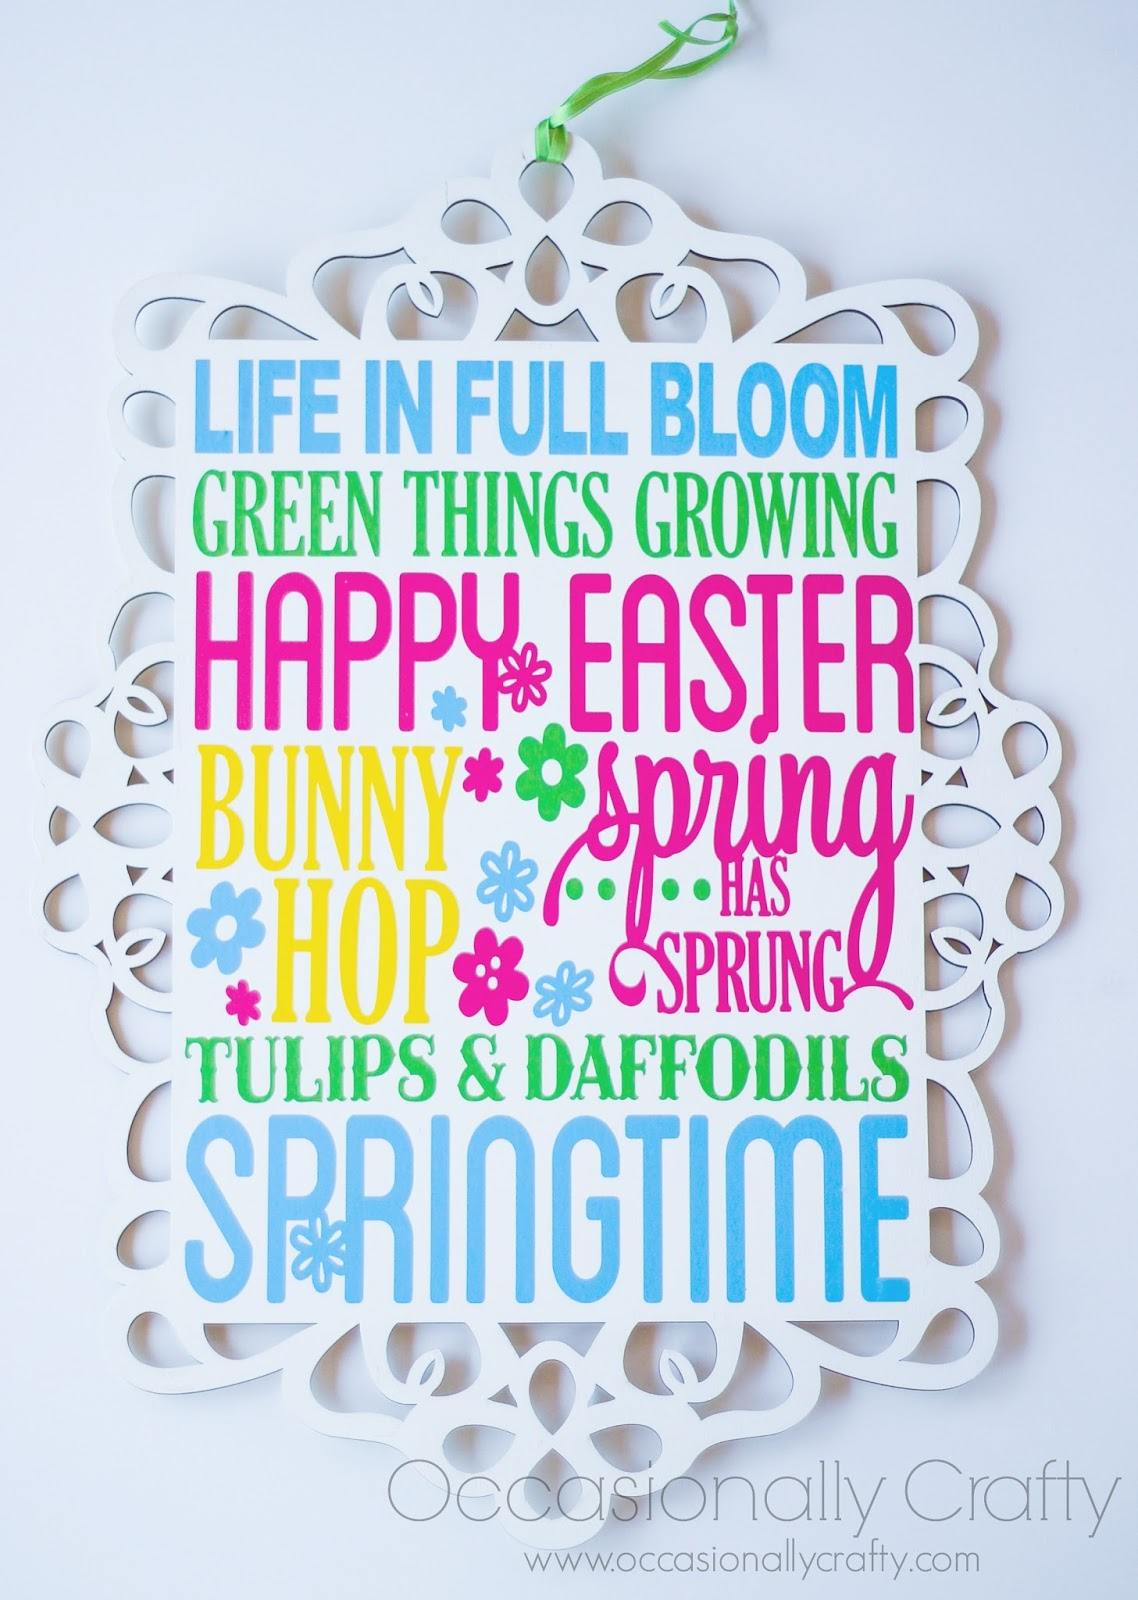 Spring Sign from Occasionally Crafty